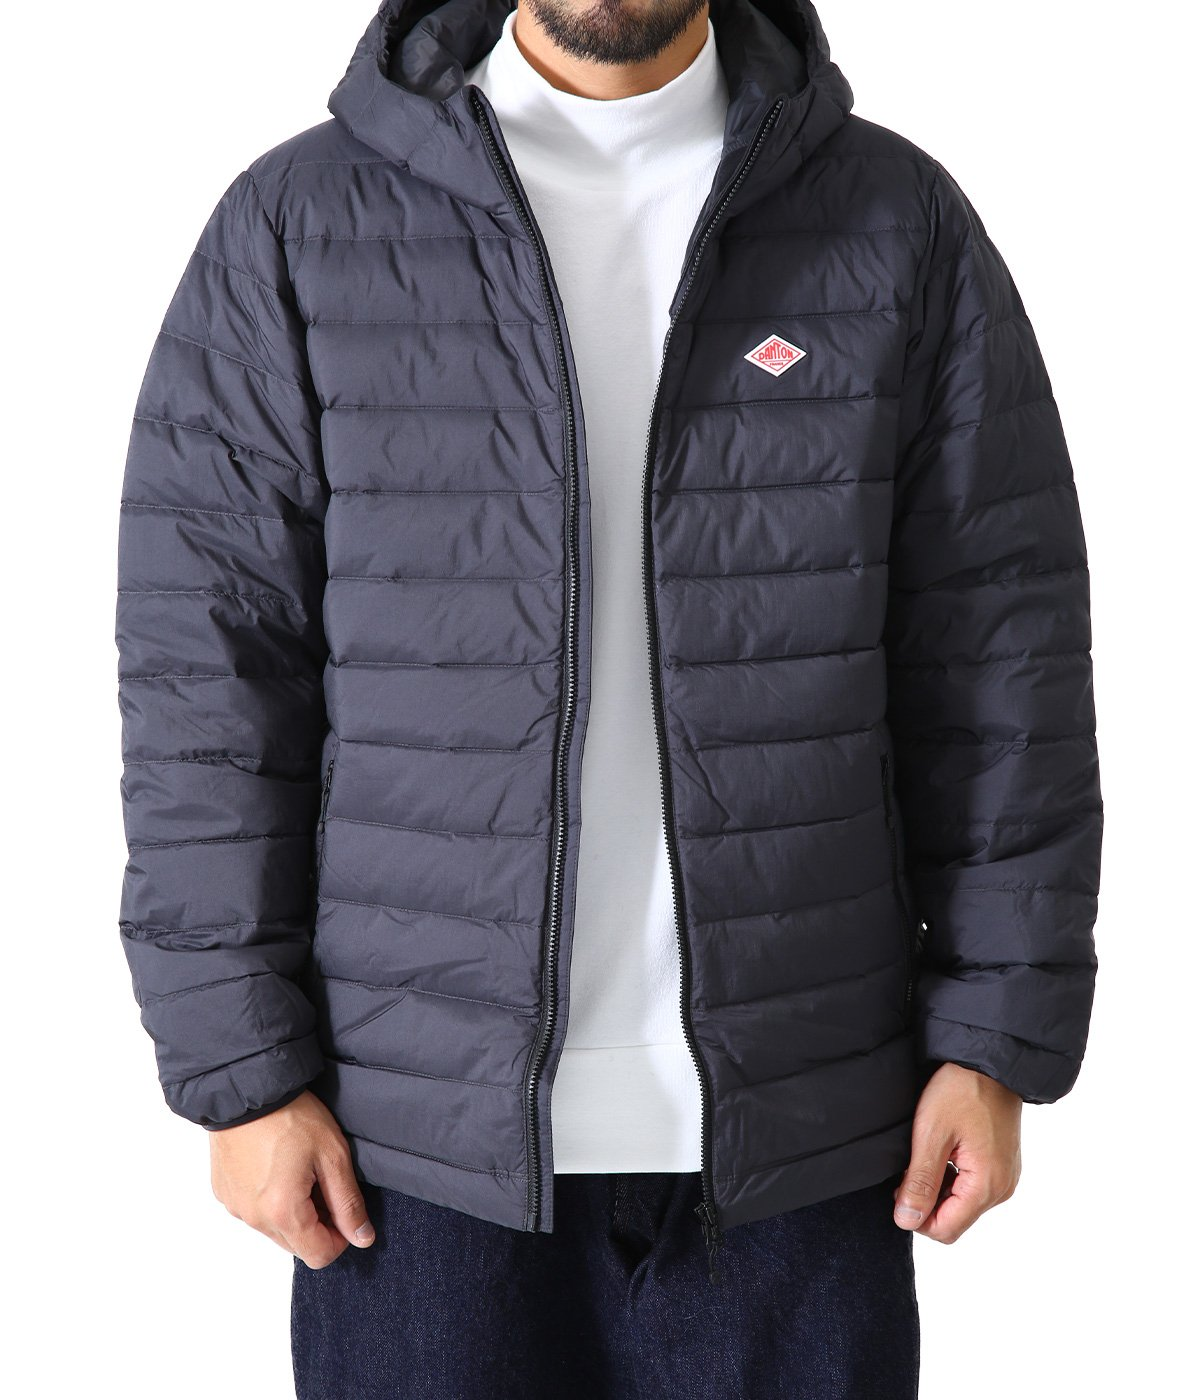 MIDDLE DOWN HOODED JACKET